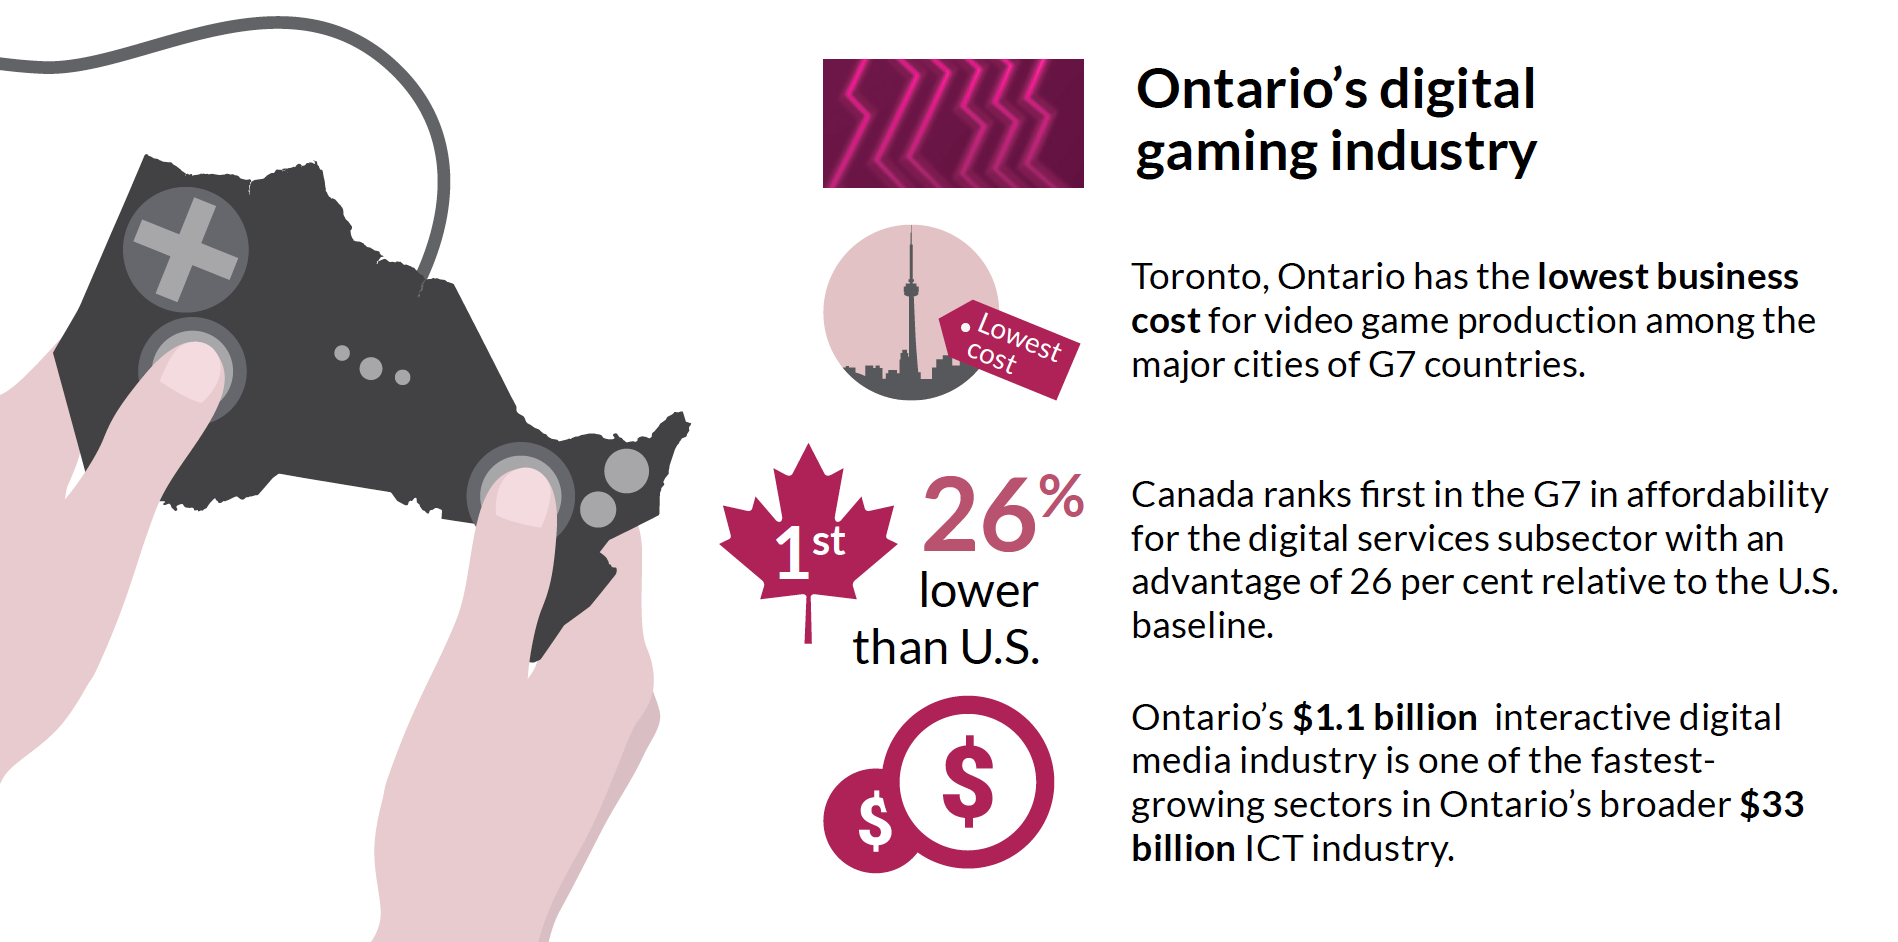 Ontario's digital gaming industry